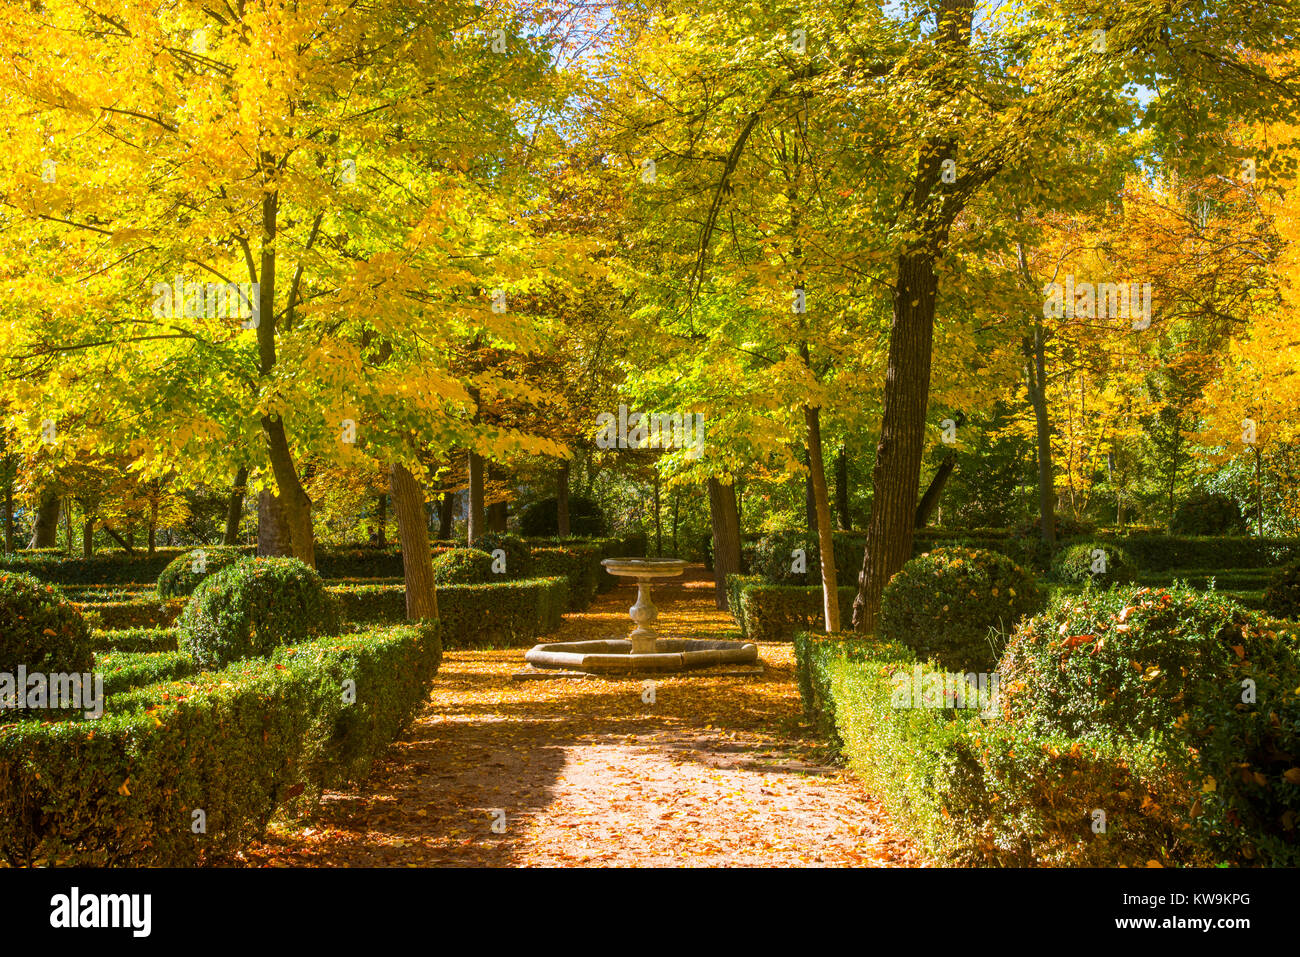 La Isla gardens in Autumn. Aranjuez, Madrid province, Spain. - Stock Image